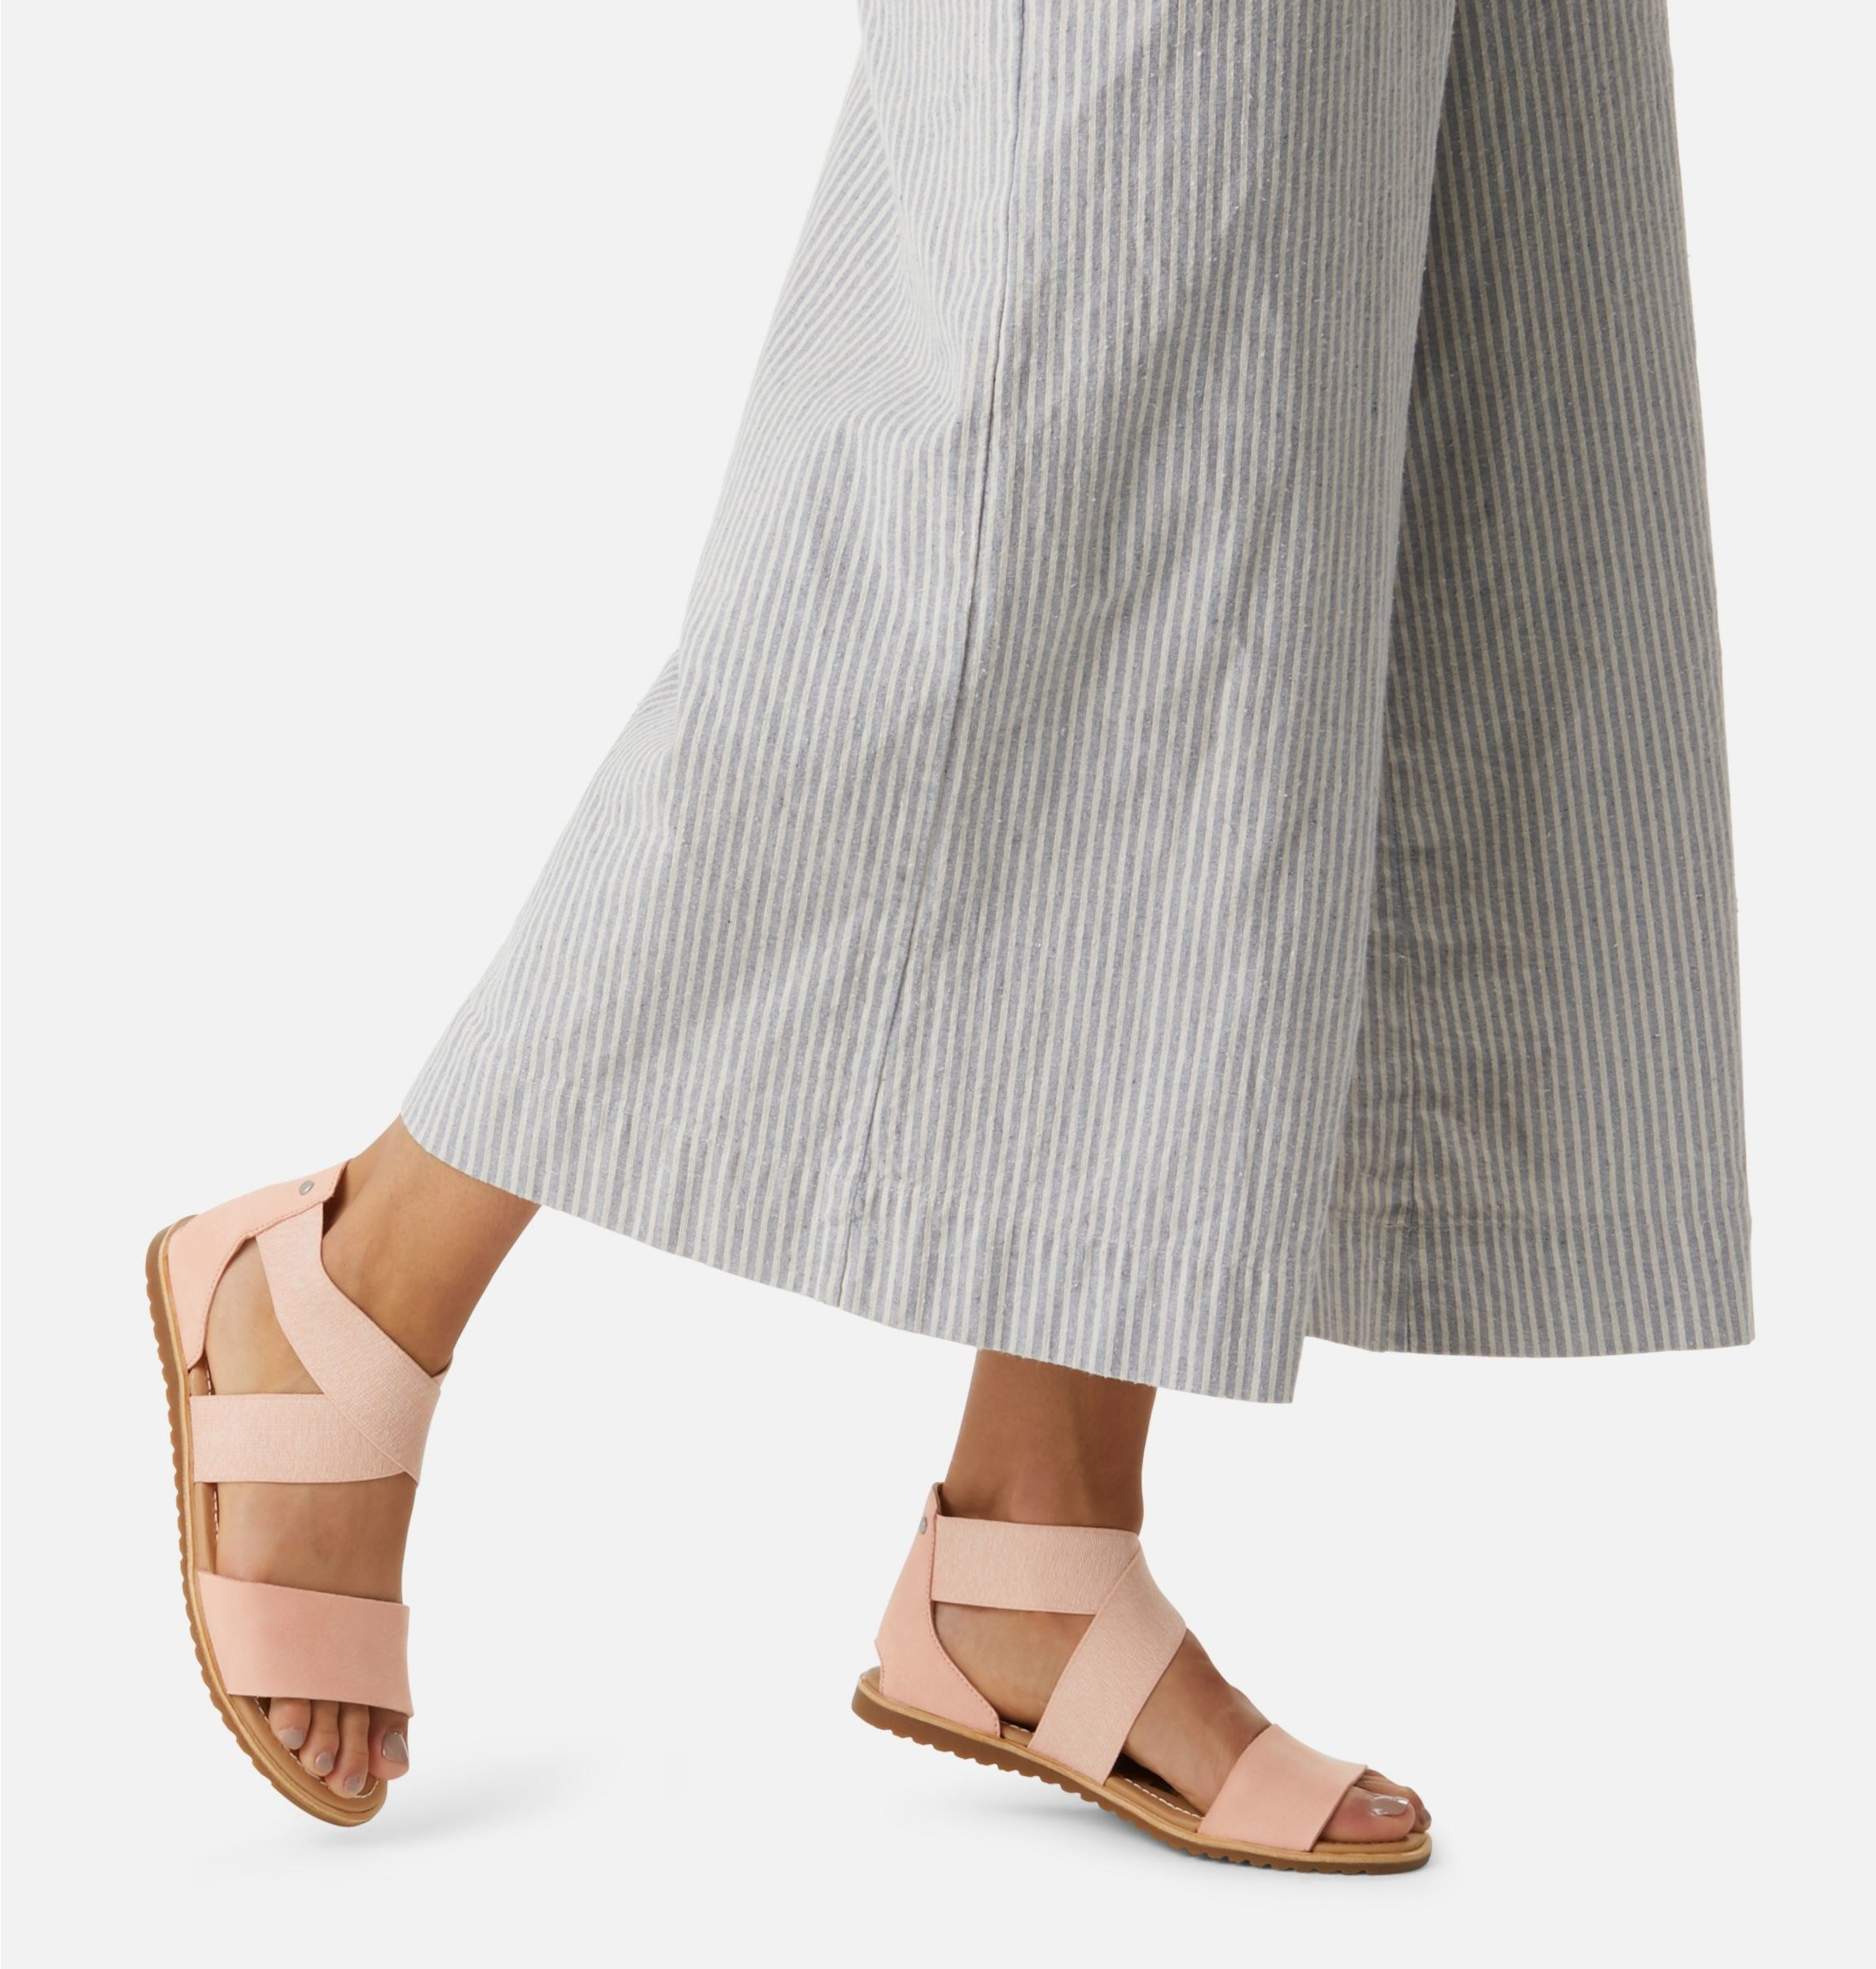 model wearing flat wide-strap peach sandals with heeled back and criss-cross ankle